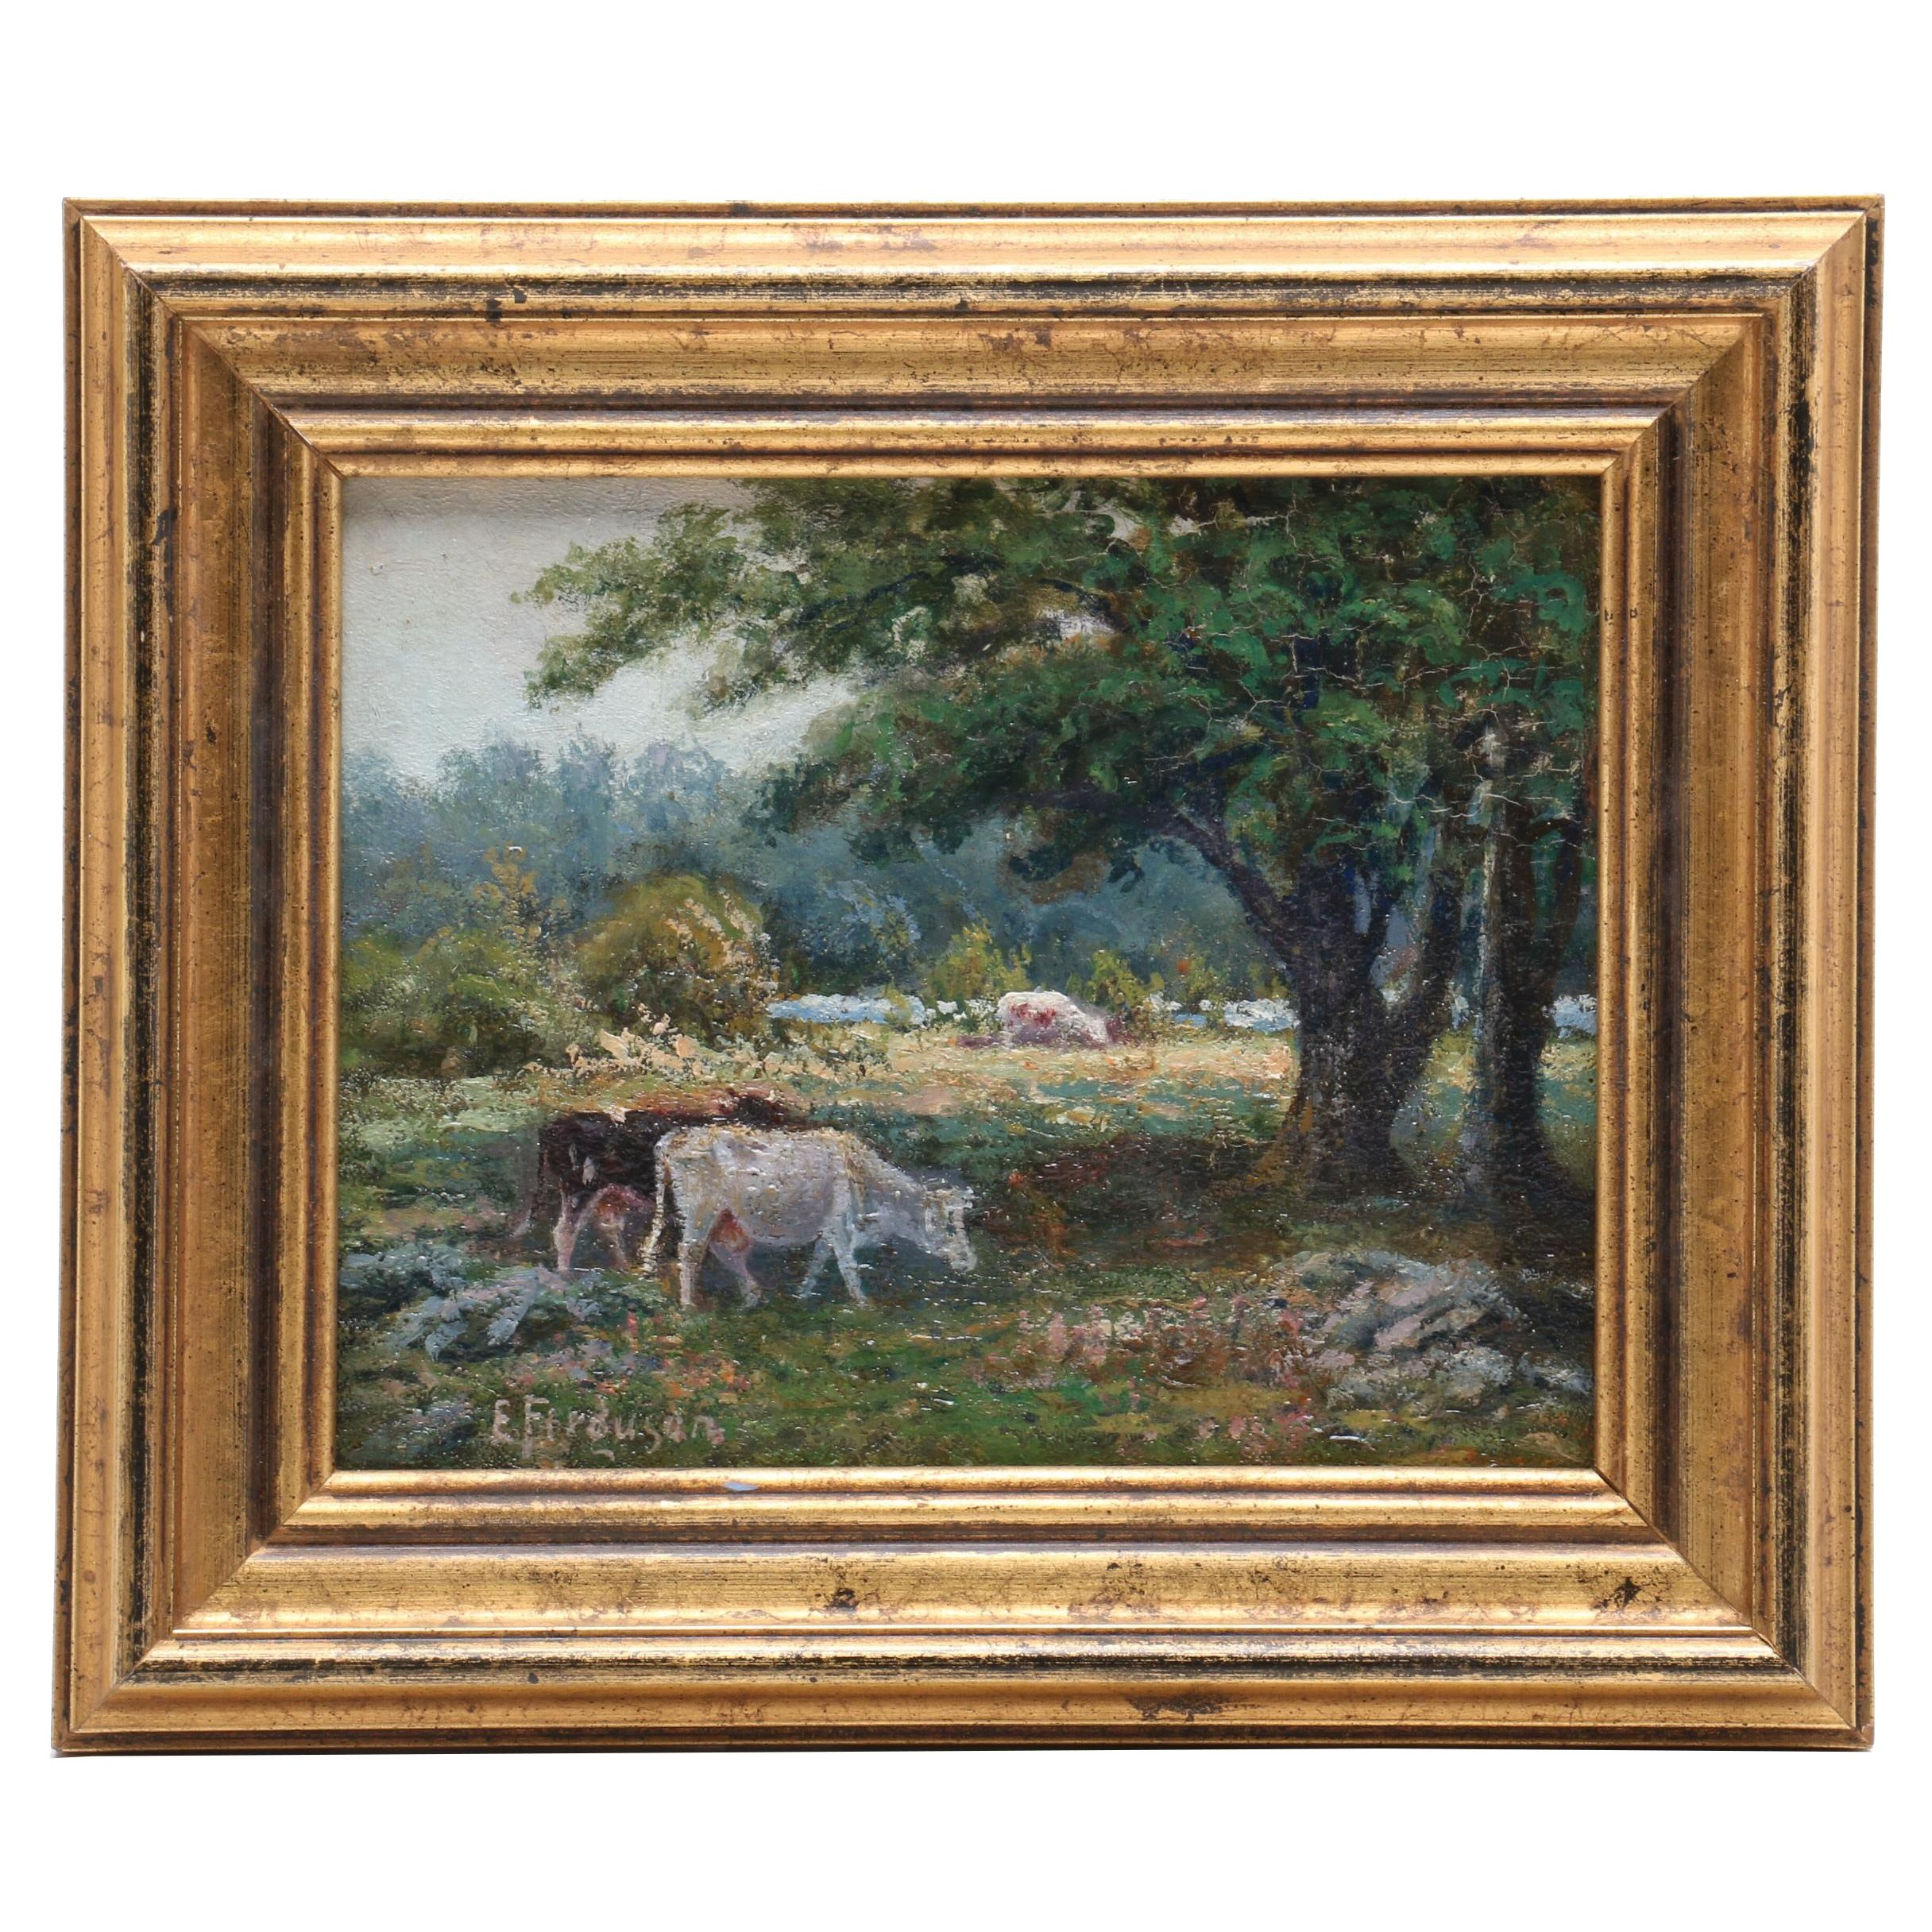 Elizabeth Ferguson Oil Painting of Landscape with Cows